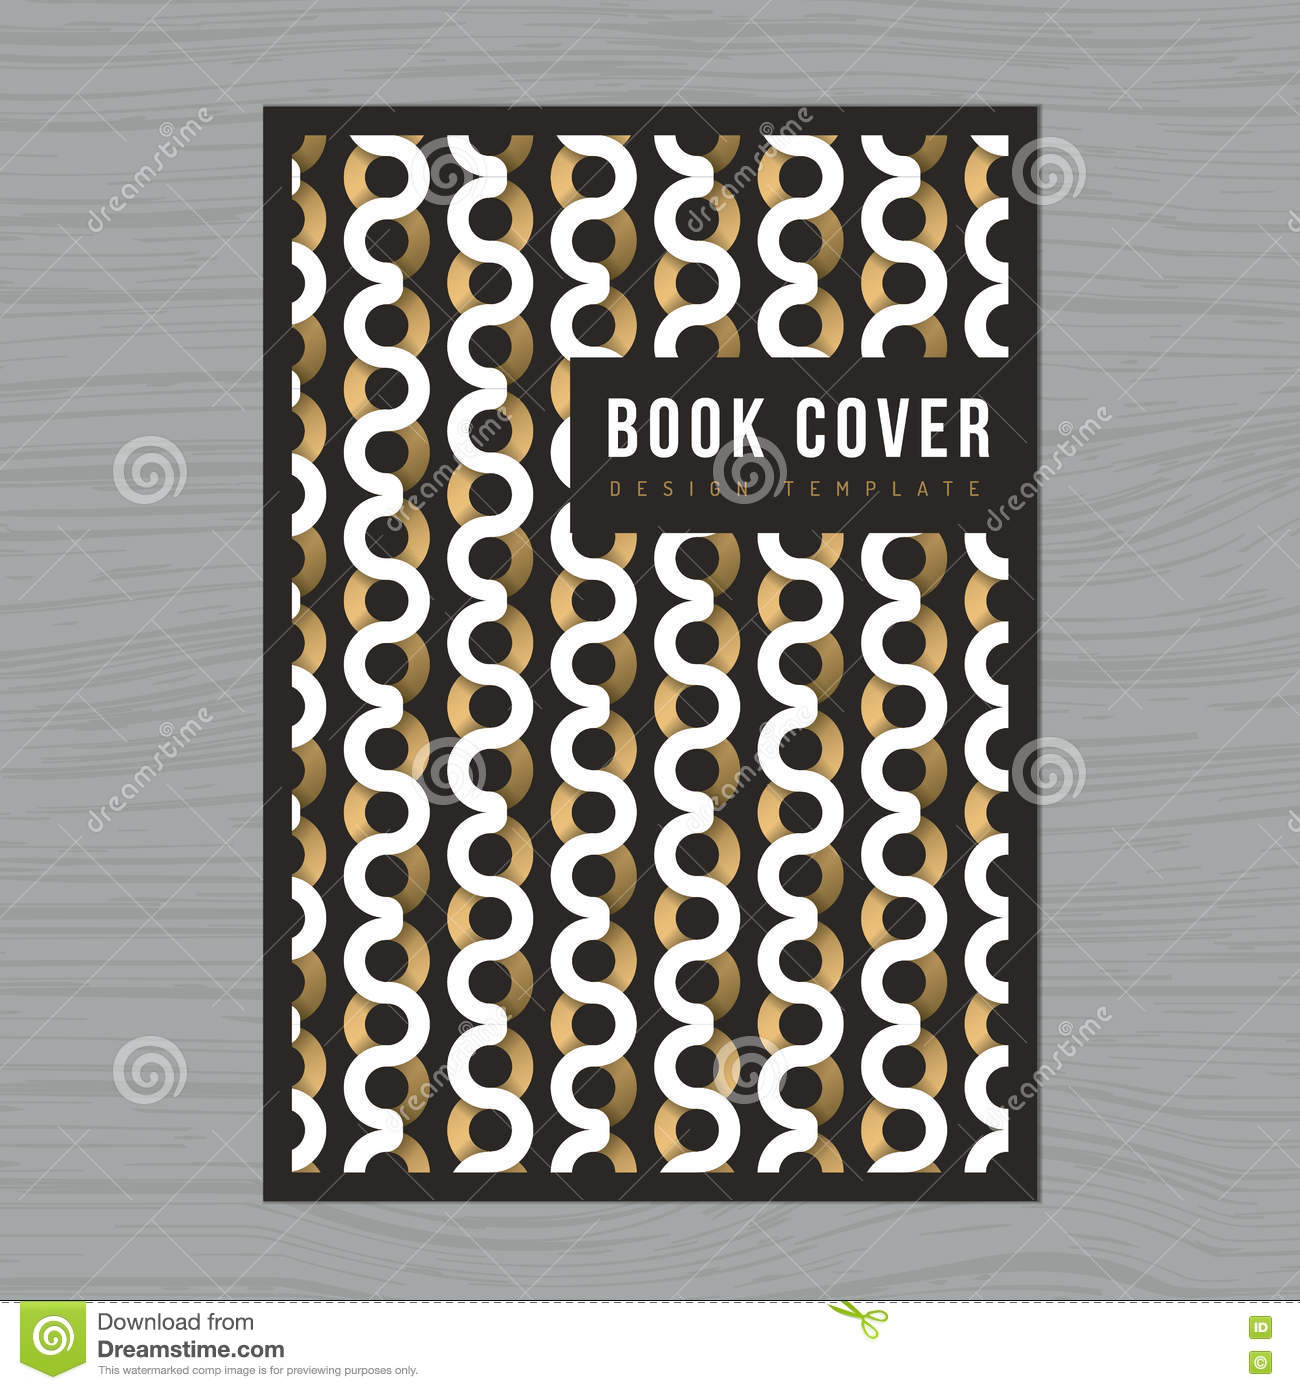 Book Cover Illustration Royalties : Abstract background for book cover poster flyer